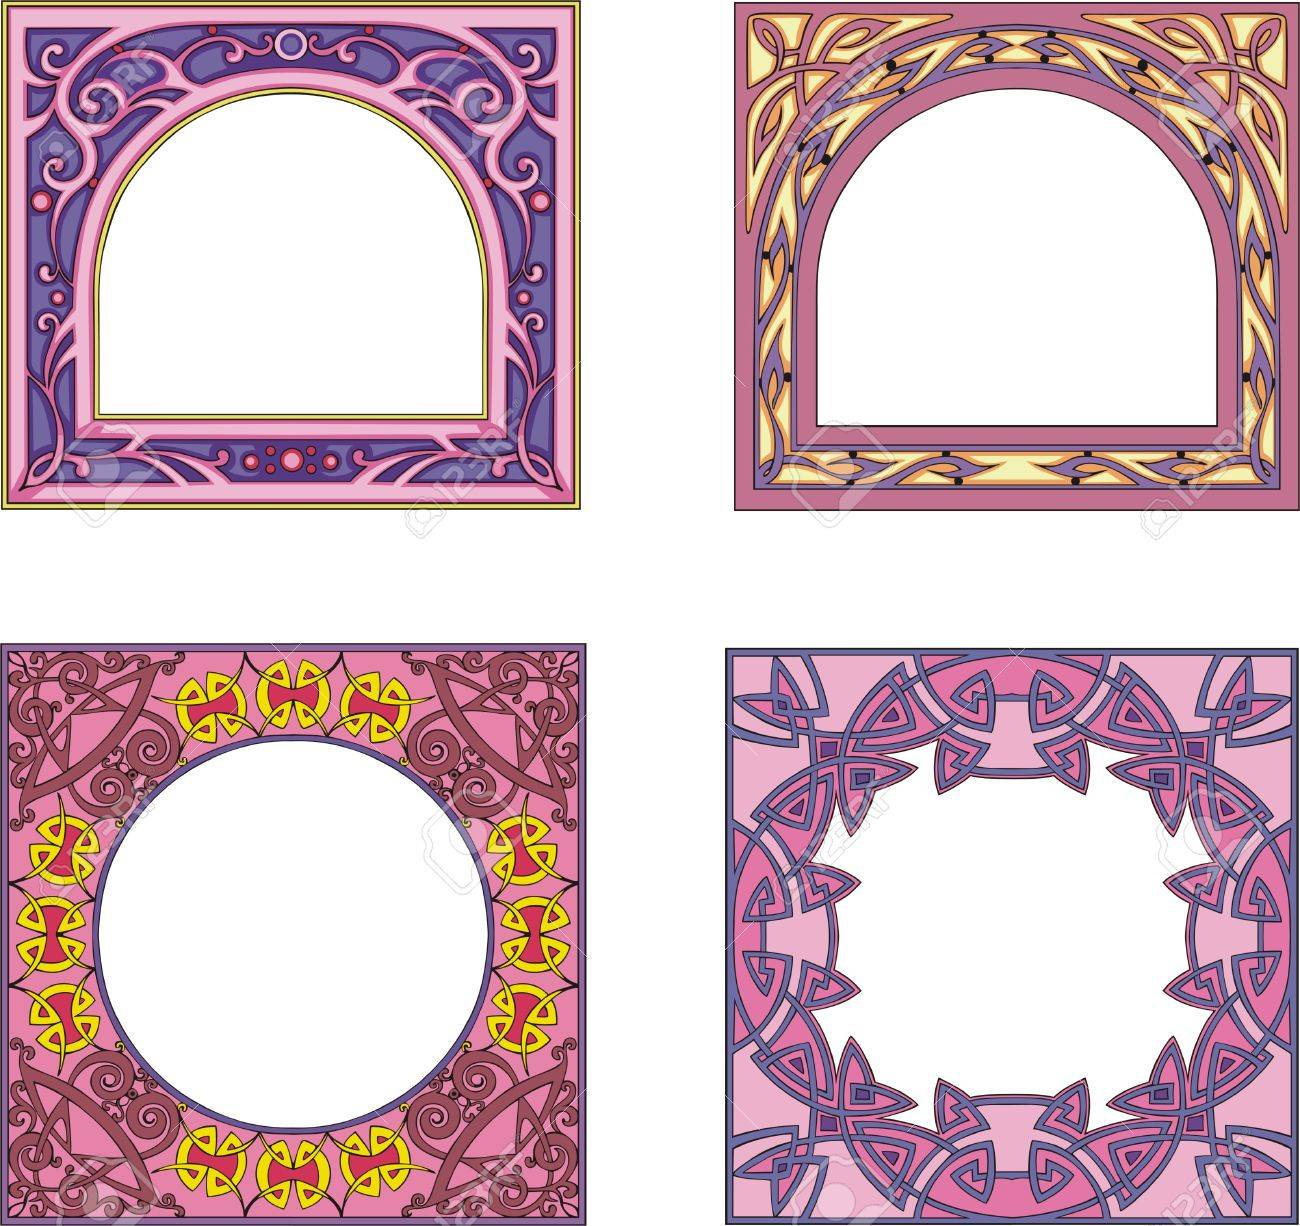 Four ornamental colorfull frames for book or other product covers and booklets. Square form with arched or round center. Vector vinyl-ready EPS Illustrations. Stock Vector - 8432155